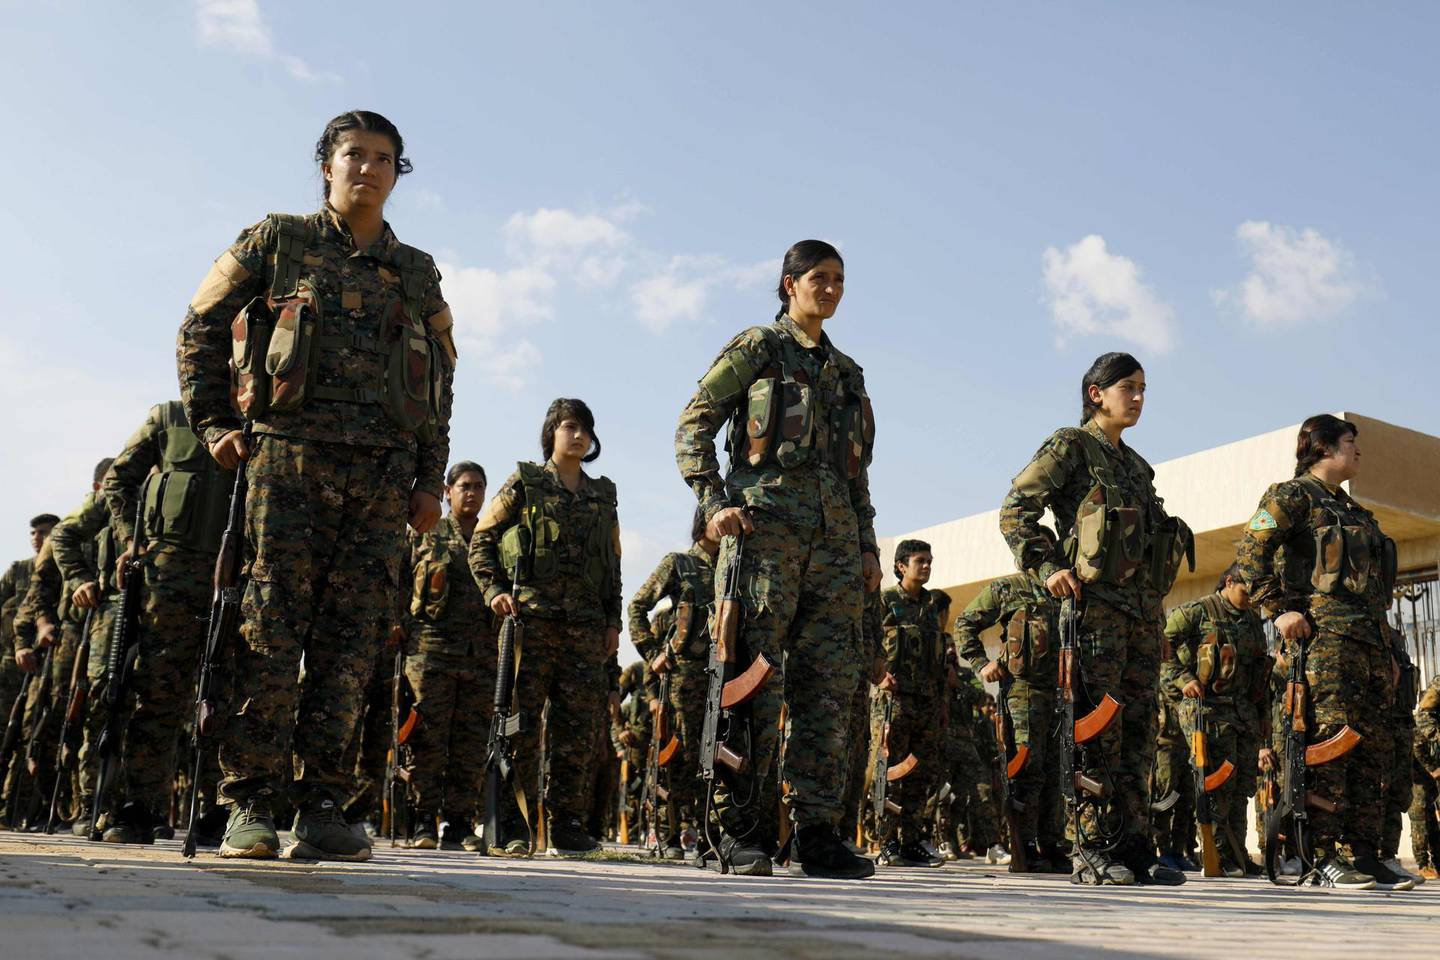 """(FILES) In this file photo taken on November 10, 2018, fighters from the Syrian Democratic Forces (SDF), participate in a military parade during the funeral of a fellow fighter, killed during a military mission, in the Kurdish-controlled city of Qamishly in northeastern Syria. Any unilateral military action in northern Syria would be """"unacceptable,"""" the Pentagon warned Wednesday after Turkey said it would soon launch an operation against a US-backed Kurdish militia. """"Unilateral military action into northeast Syria by any party, particularly as US personnel may be present or in the vicinity, is of grave concern,"""" Pentagon spokesman Commander Sean Robertson said in a statement. / AFP / Delil SOULEIMAN"""